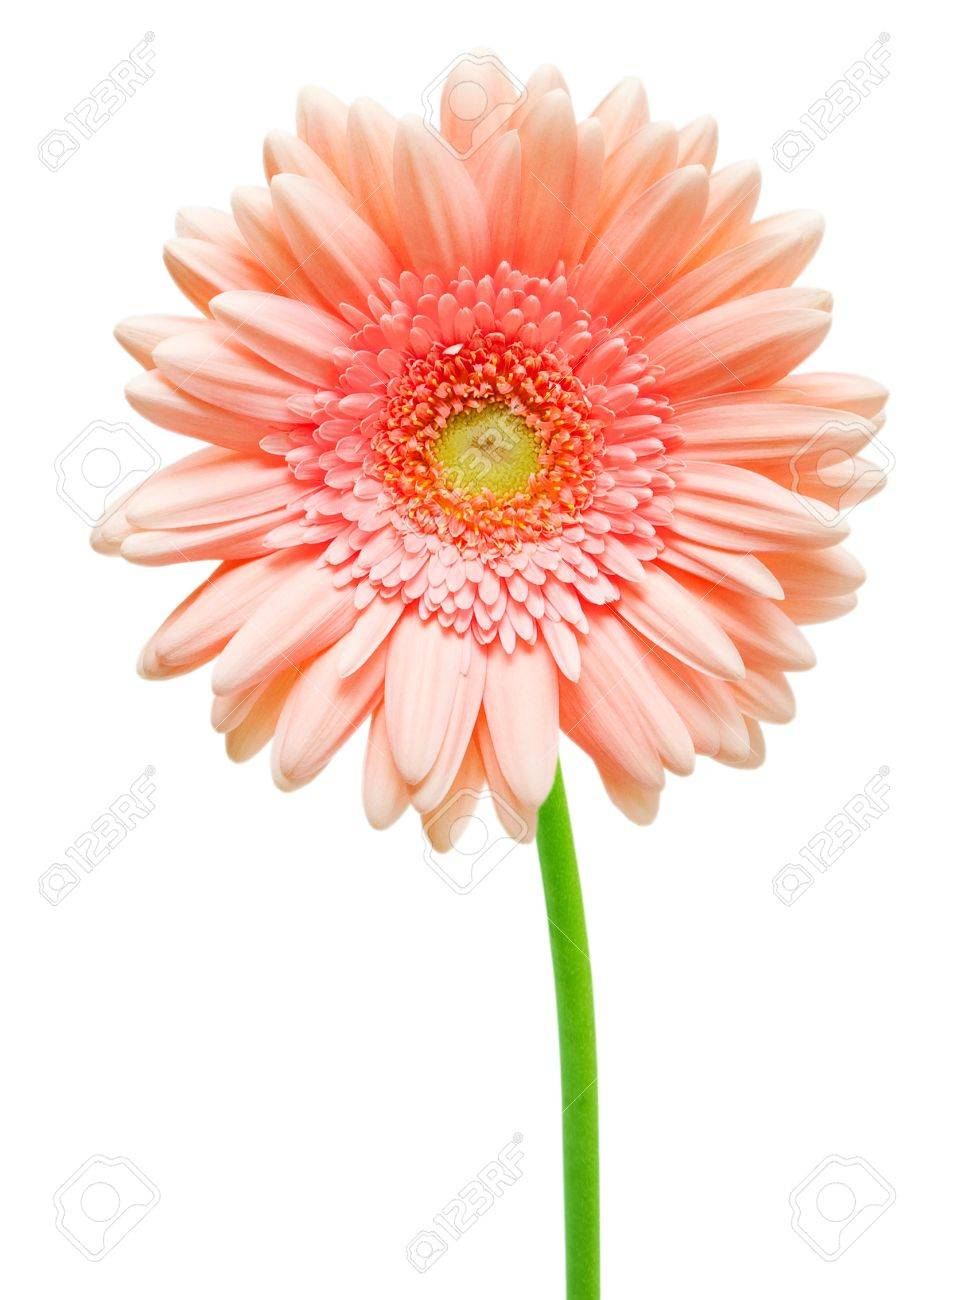 gerber flower isolated on white background Stock Photo - 10653759